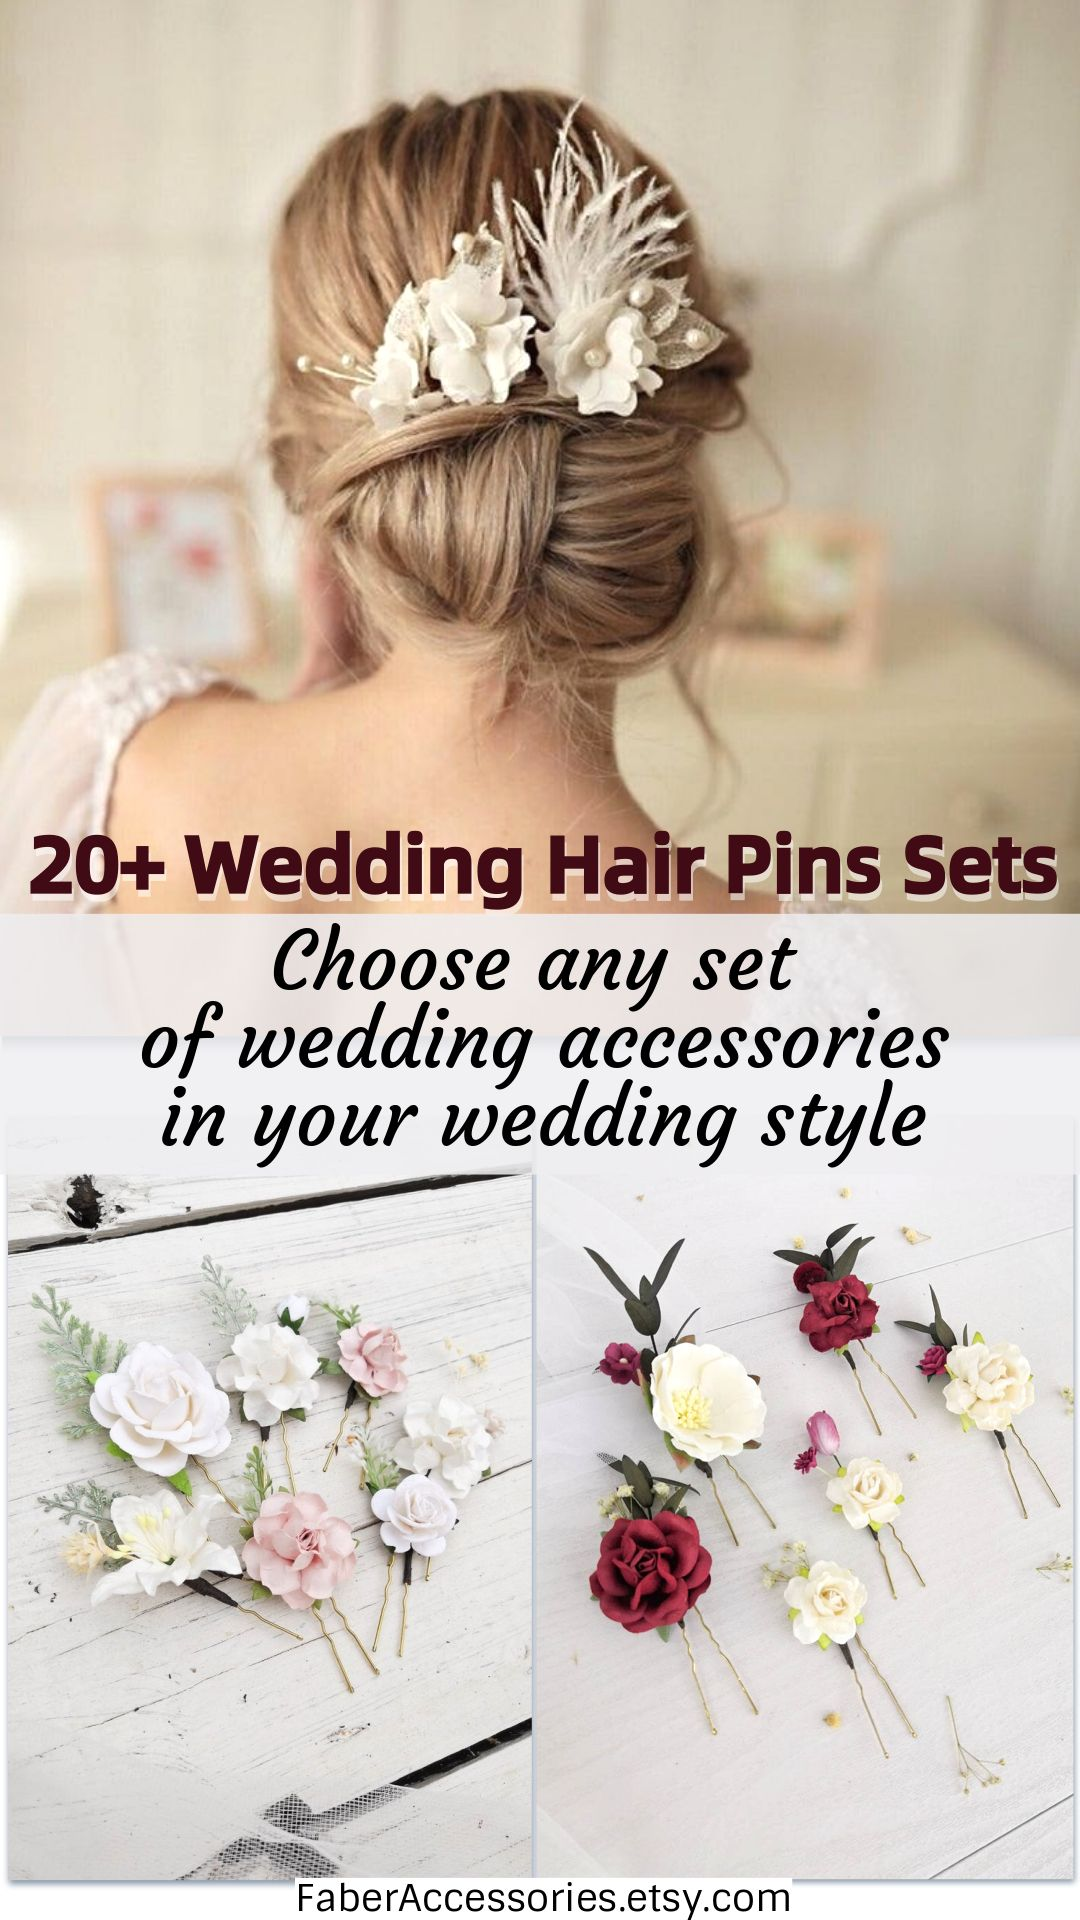 20 Wedding Hair Pins Set Choose Any Set Of Wedding Accessories In Your Wedding Style In 2020 Wedding Hair Pins Wedding Hairstyles Wedding Accessories